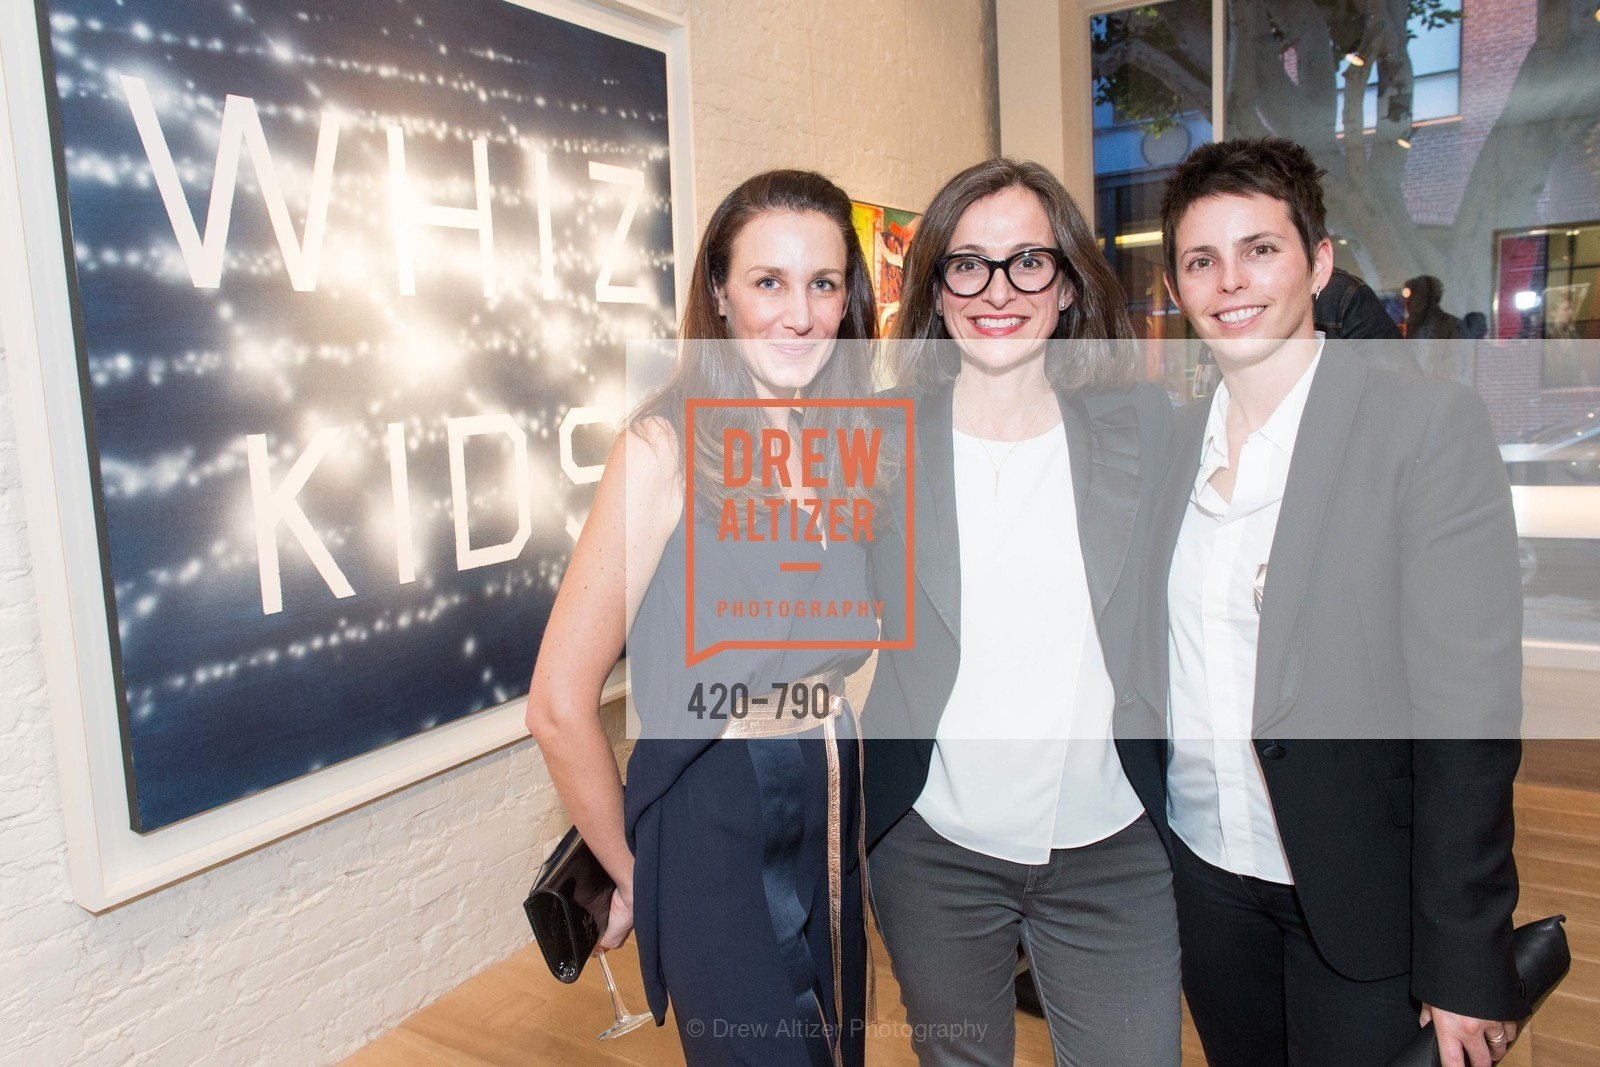 Catecine Milliot, Sarah Thornton, Jessica Silverman, Post War and Contemporary Preview at HEDGE GALLERY, US, April 15th, 2015,Drew Altizer, Drew Altizer Photography, full-service agency, private events, San Francisco photographer, photographer california